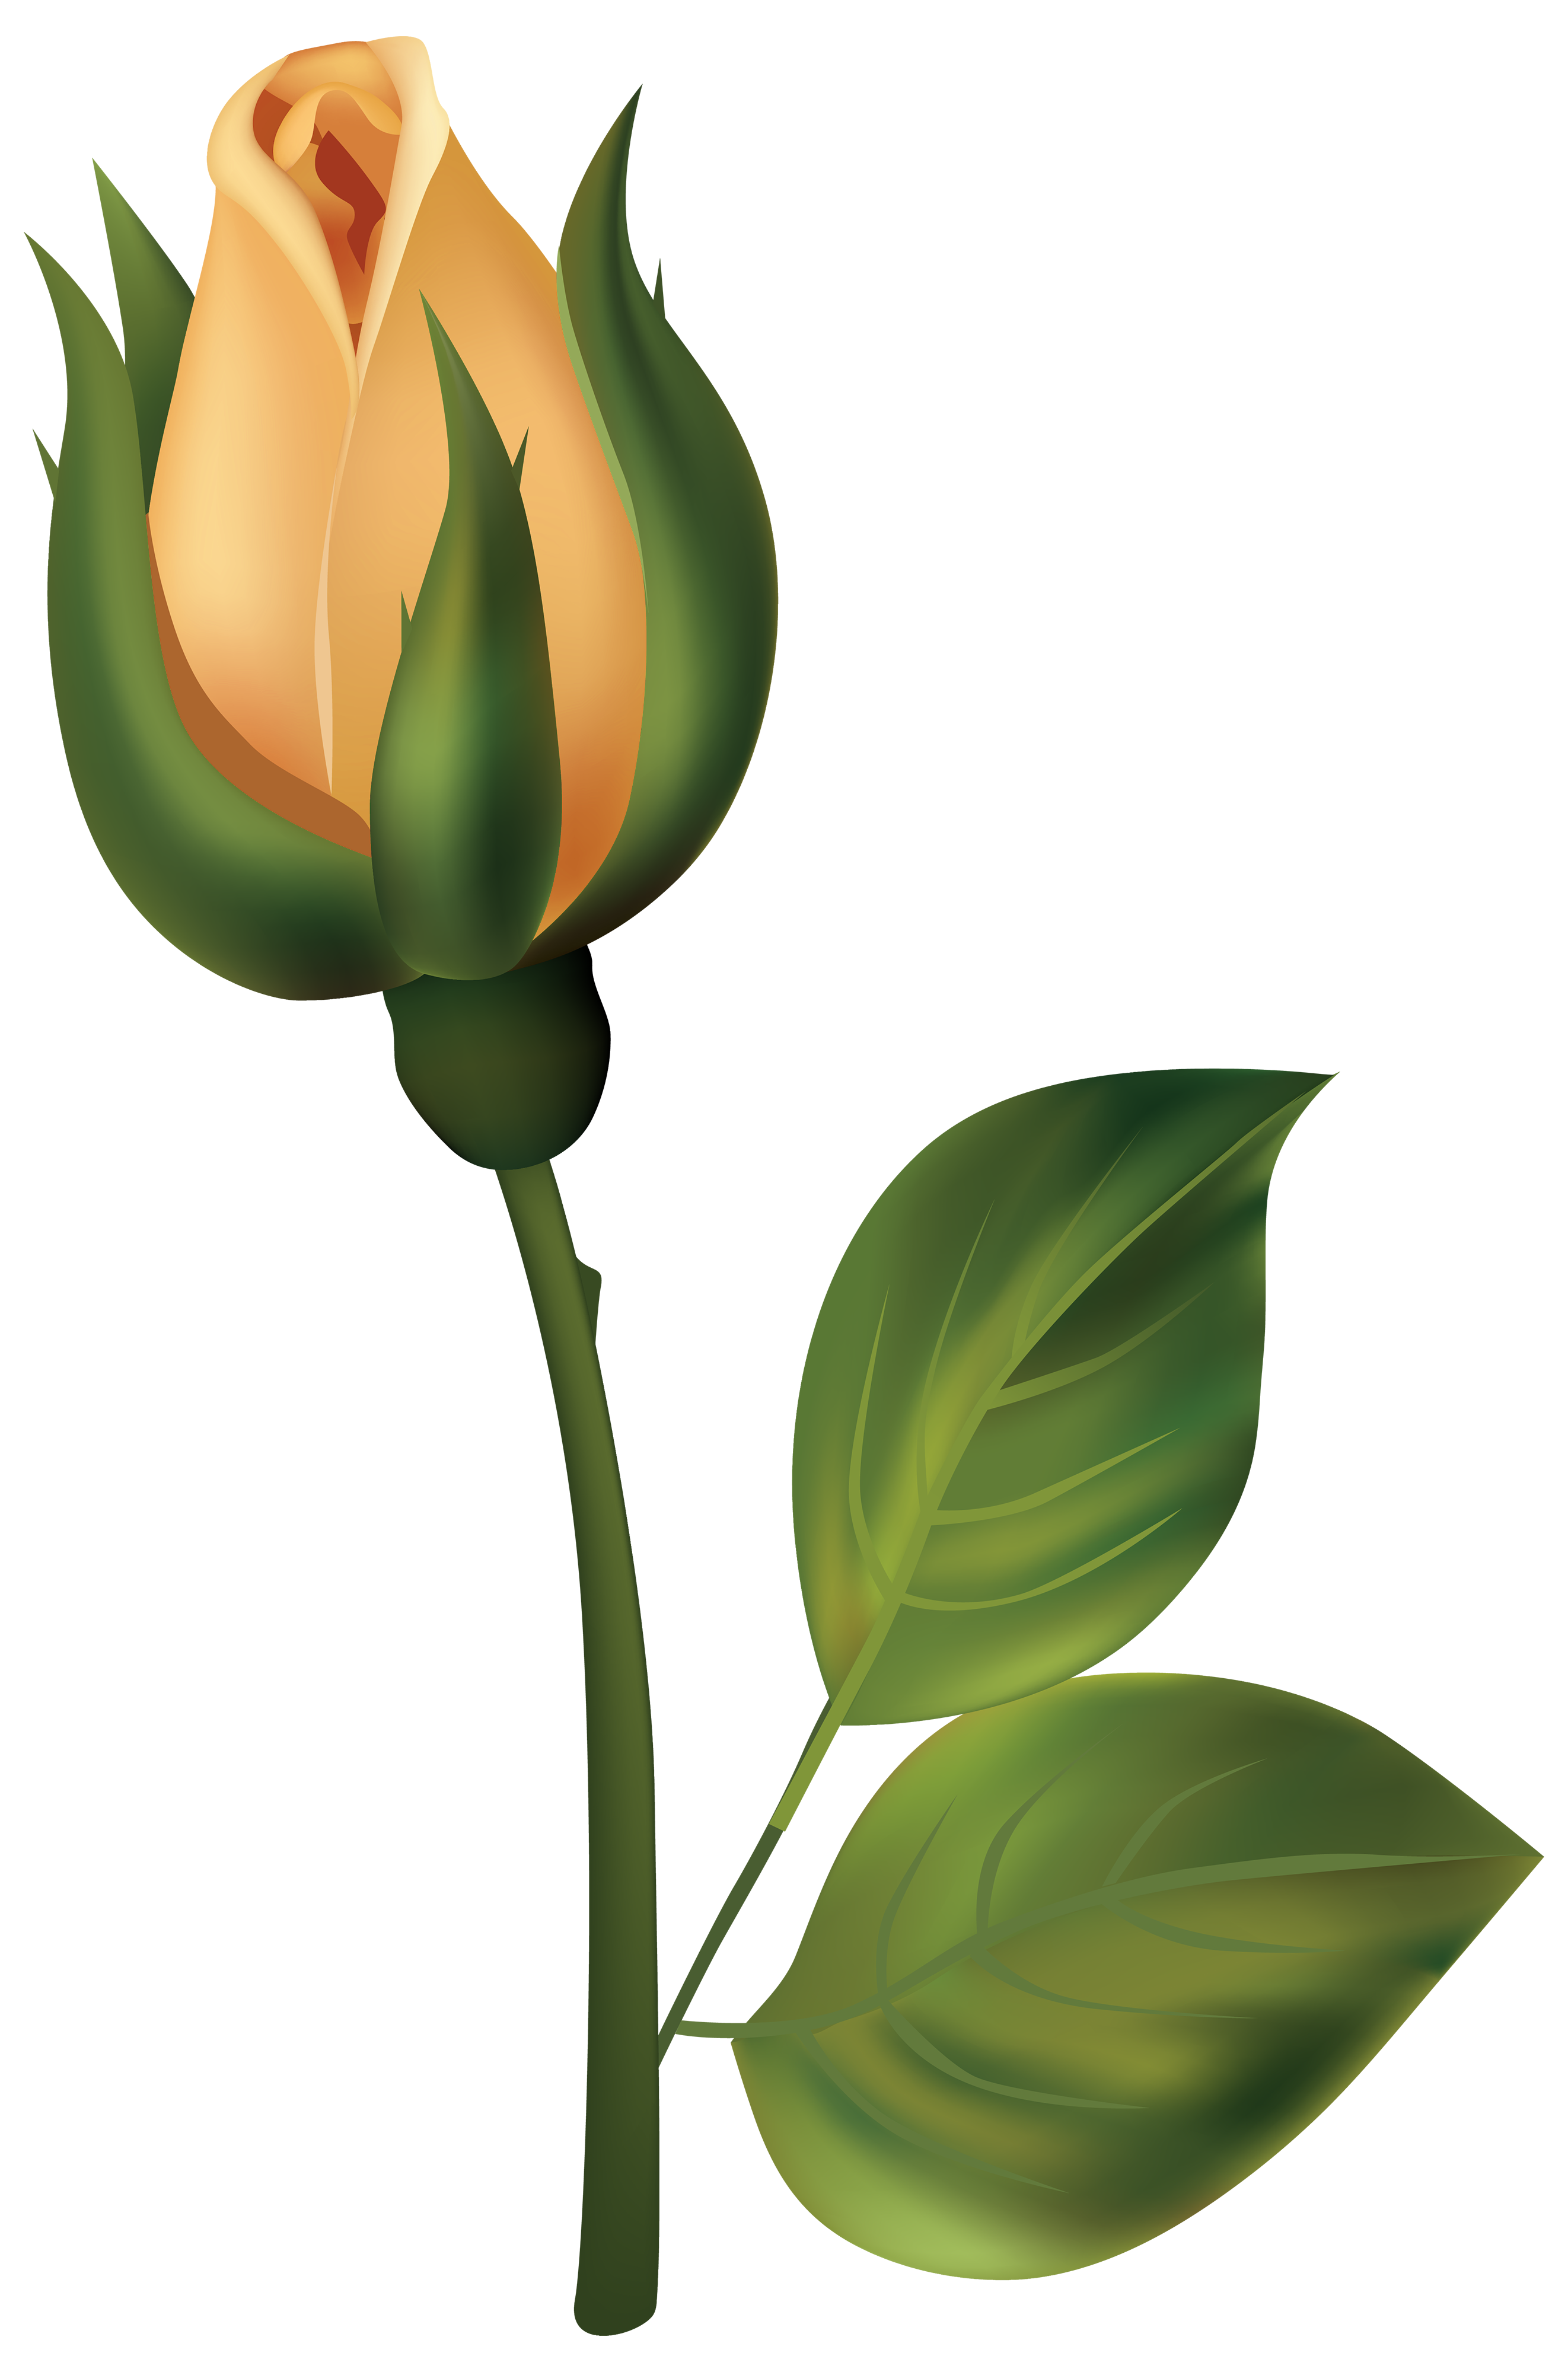 Flower bud png. Yellow rose clipart best